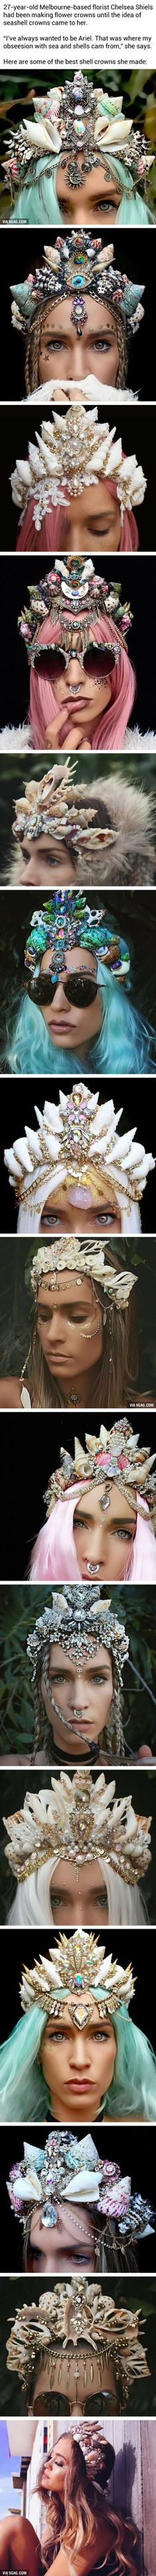 This girl makes mermaid crowns with shells, and they're just beautiful                                                                                                                                                                                 More